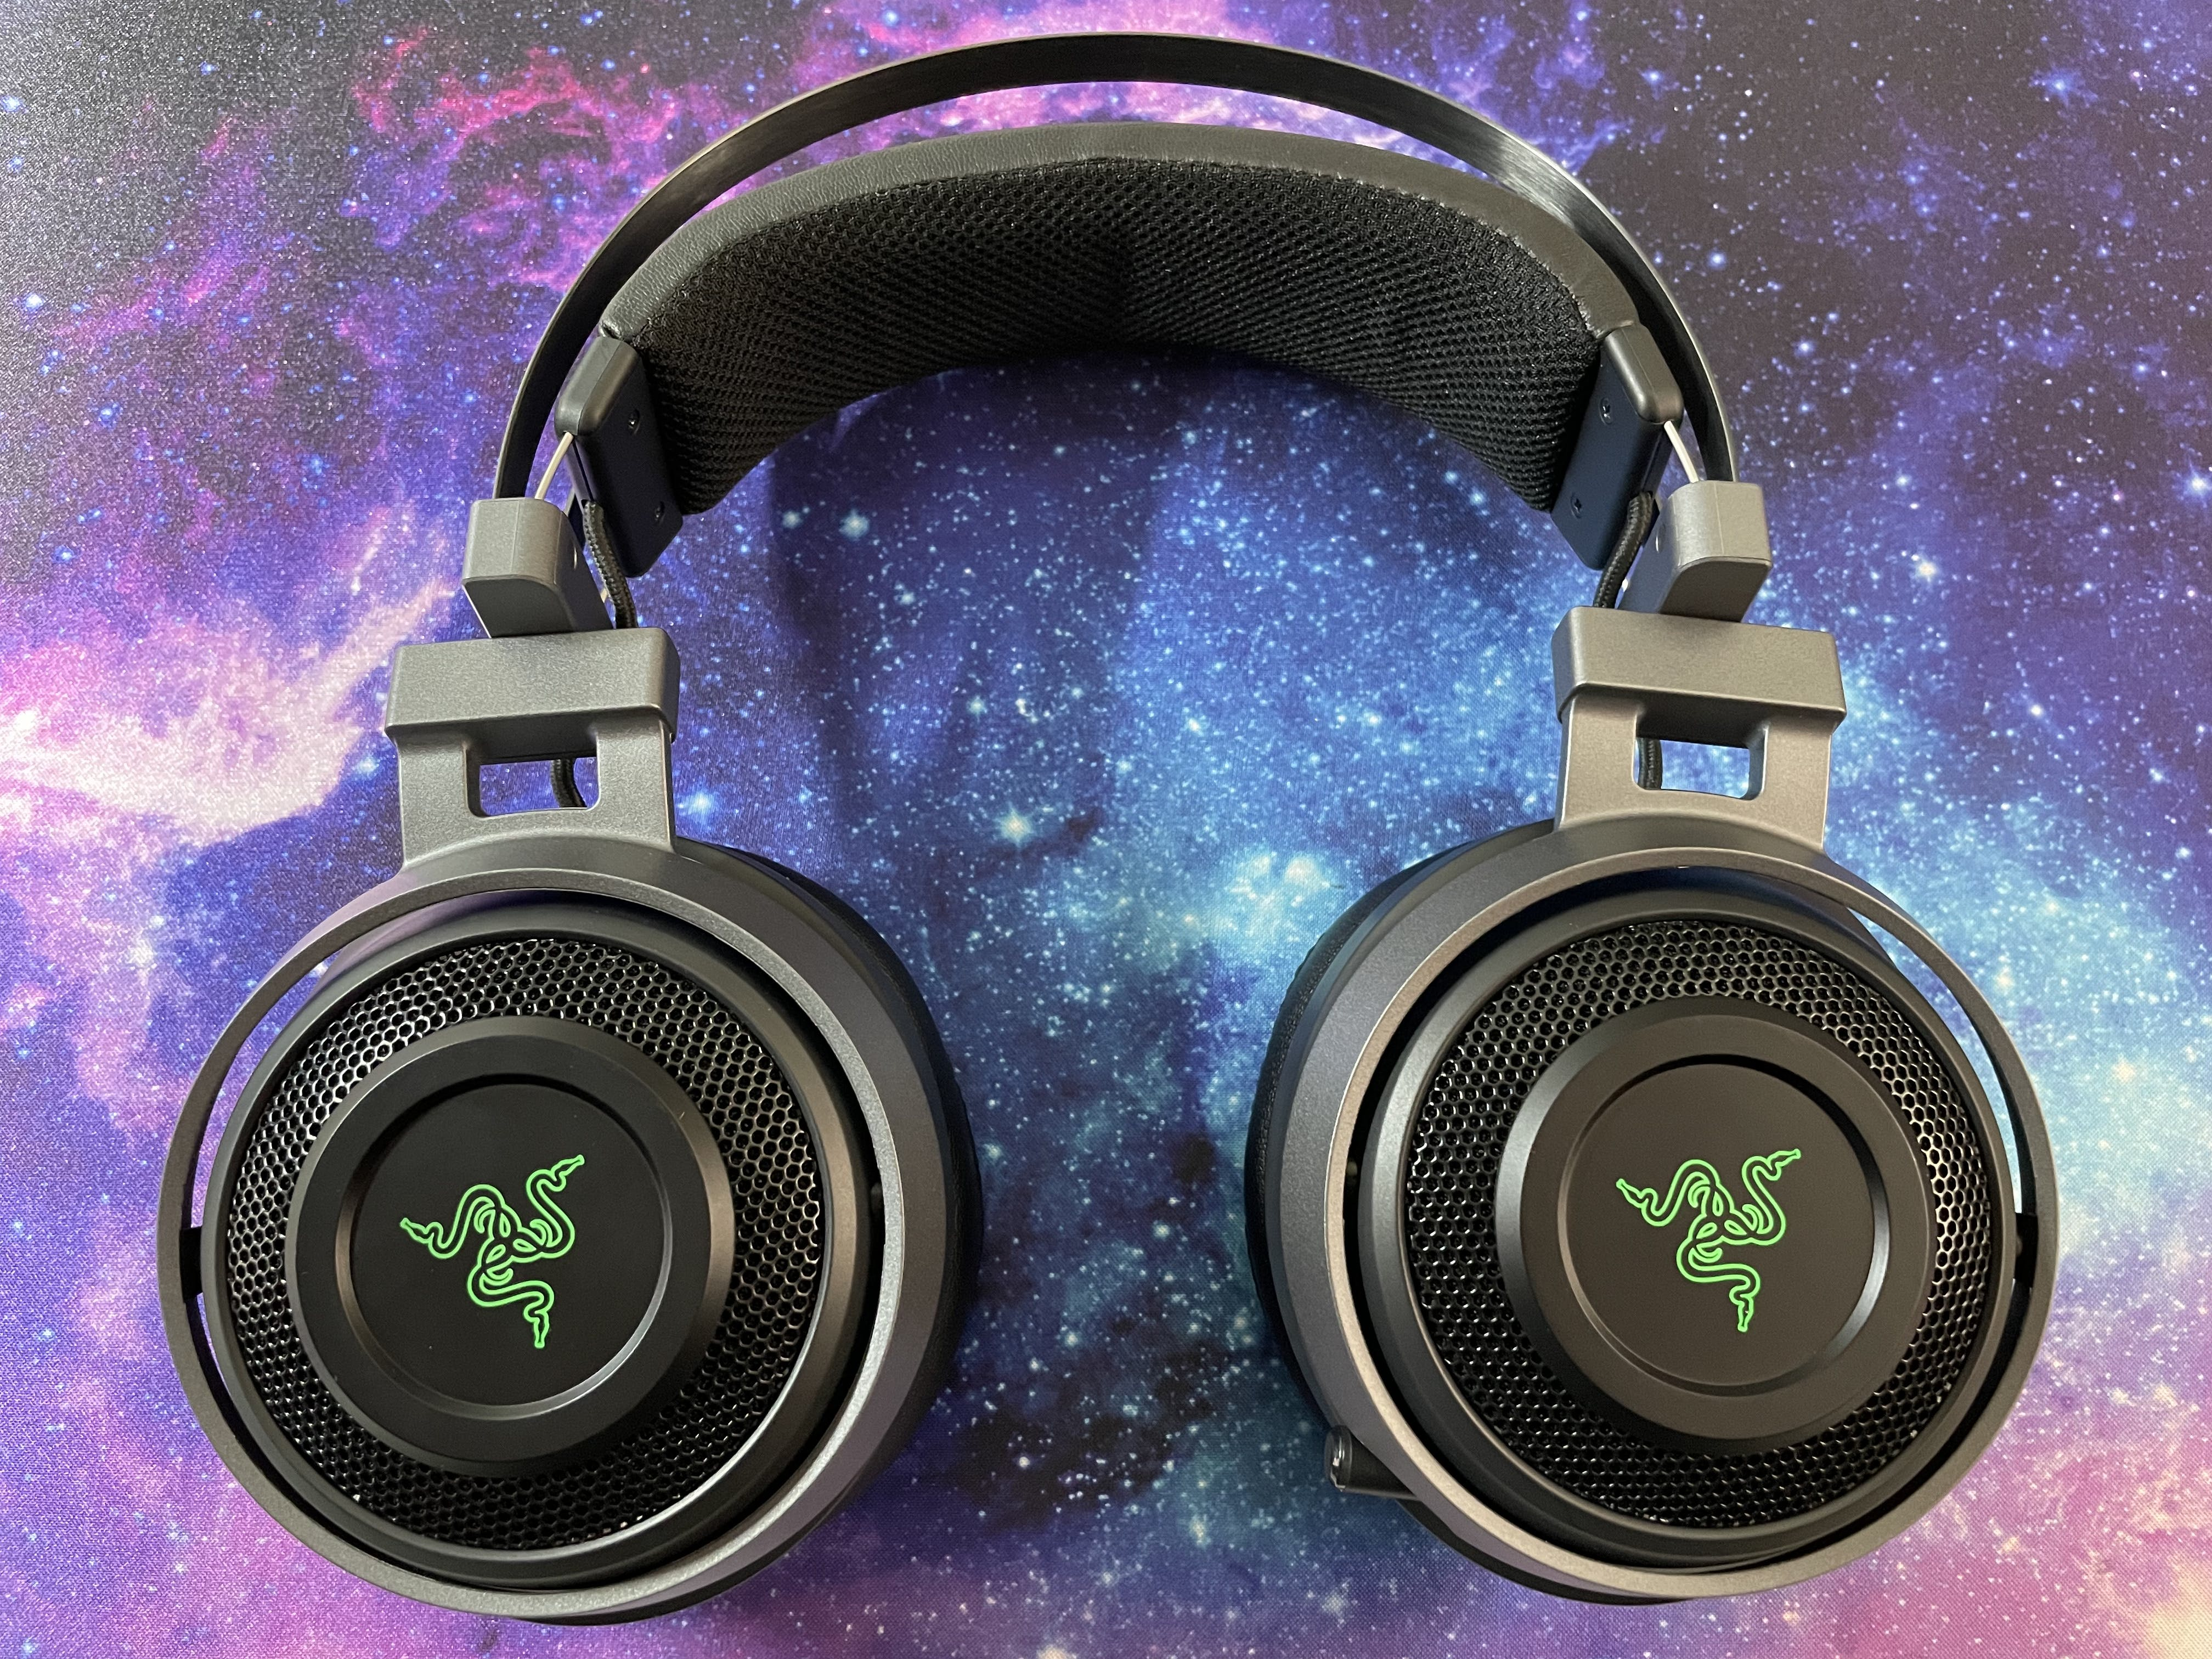 A Razer gaming headset with green logos.